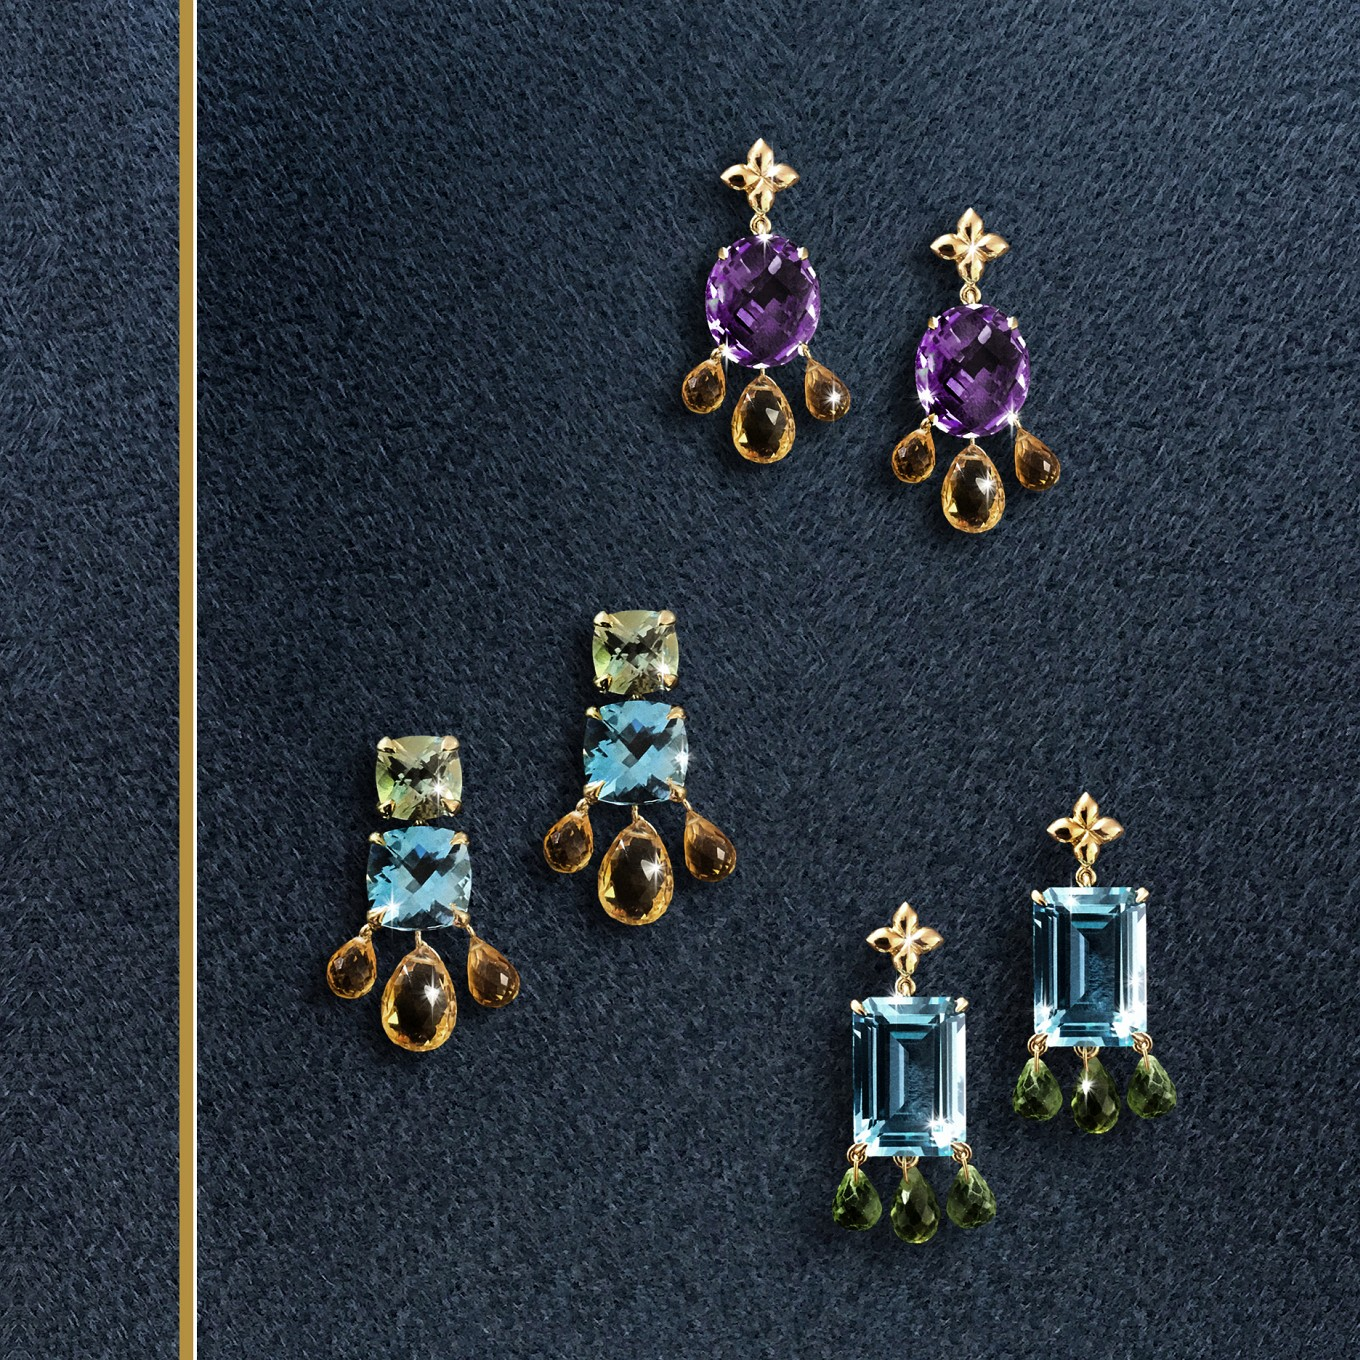 From topOval Amethyst & Citrine briolette earrings.Green amethyst blue topaz & citrine earrings.Emerald cut blue topaz & Peridot briolette earrings